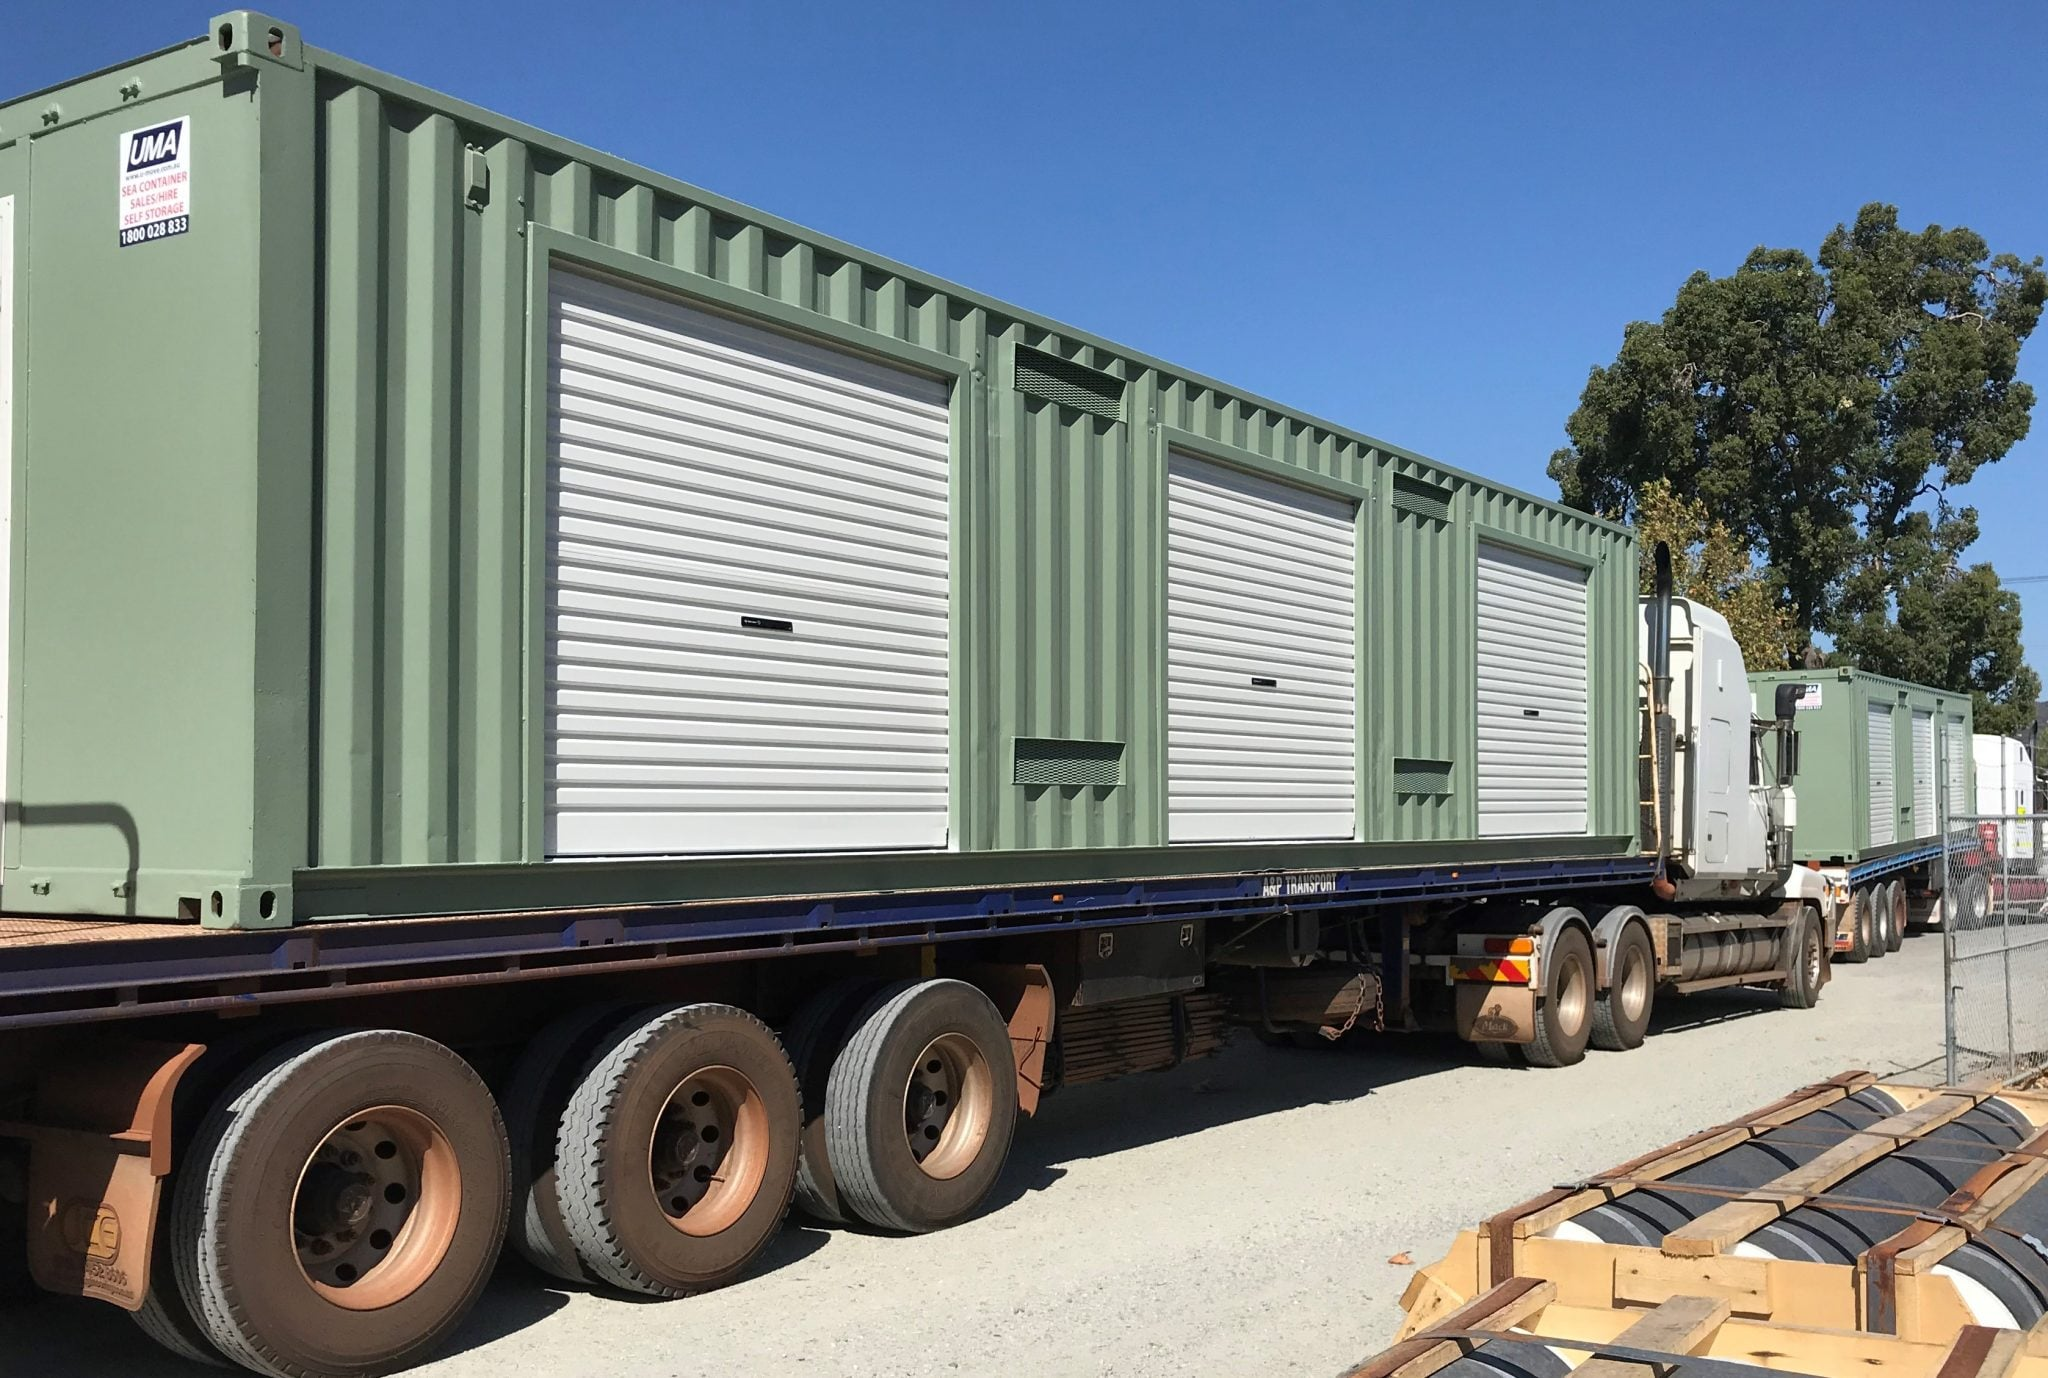 Storage Rental Perth Modified Shipping Containers Perth Custom Storage U Move Australia